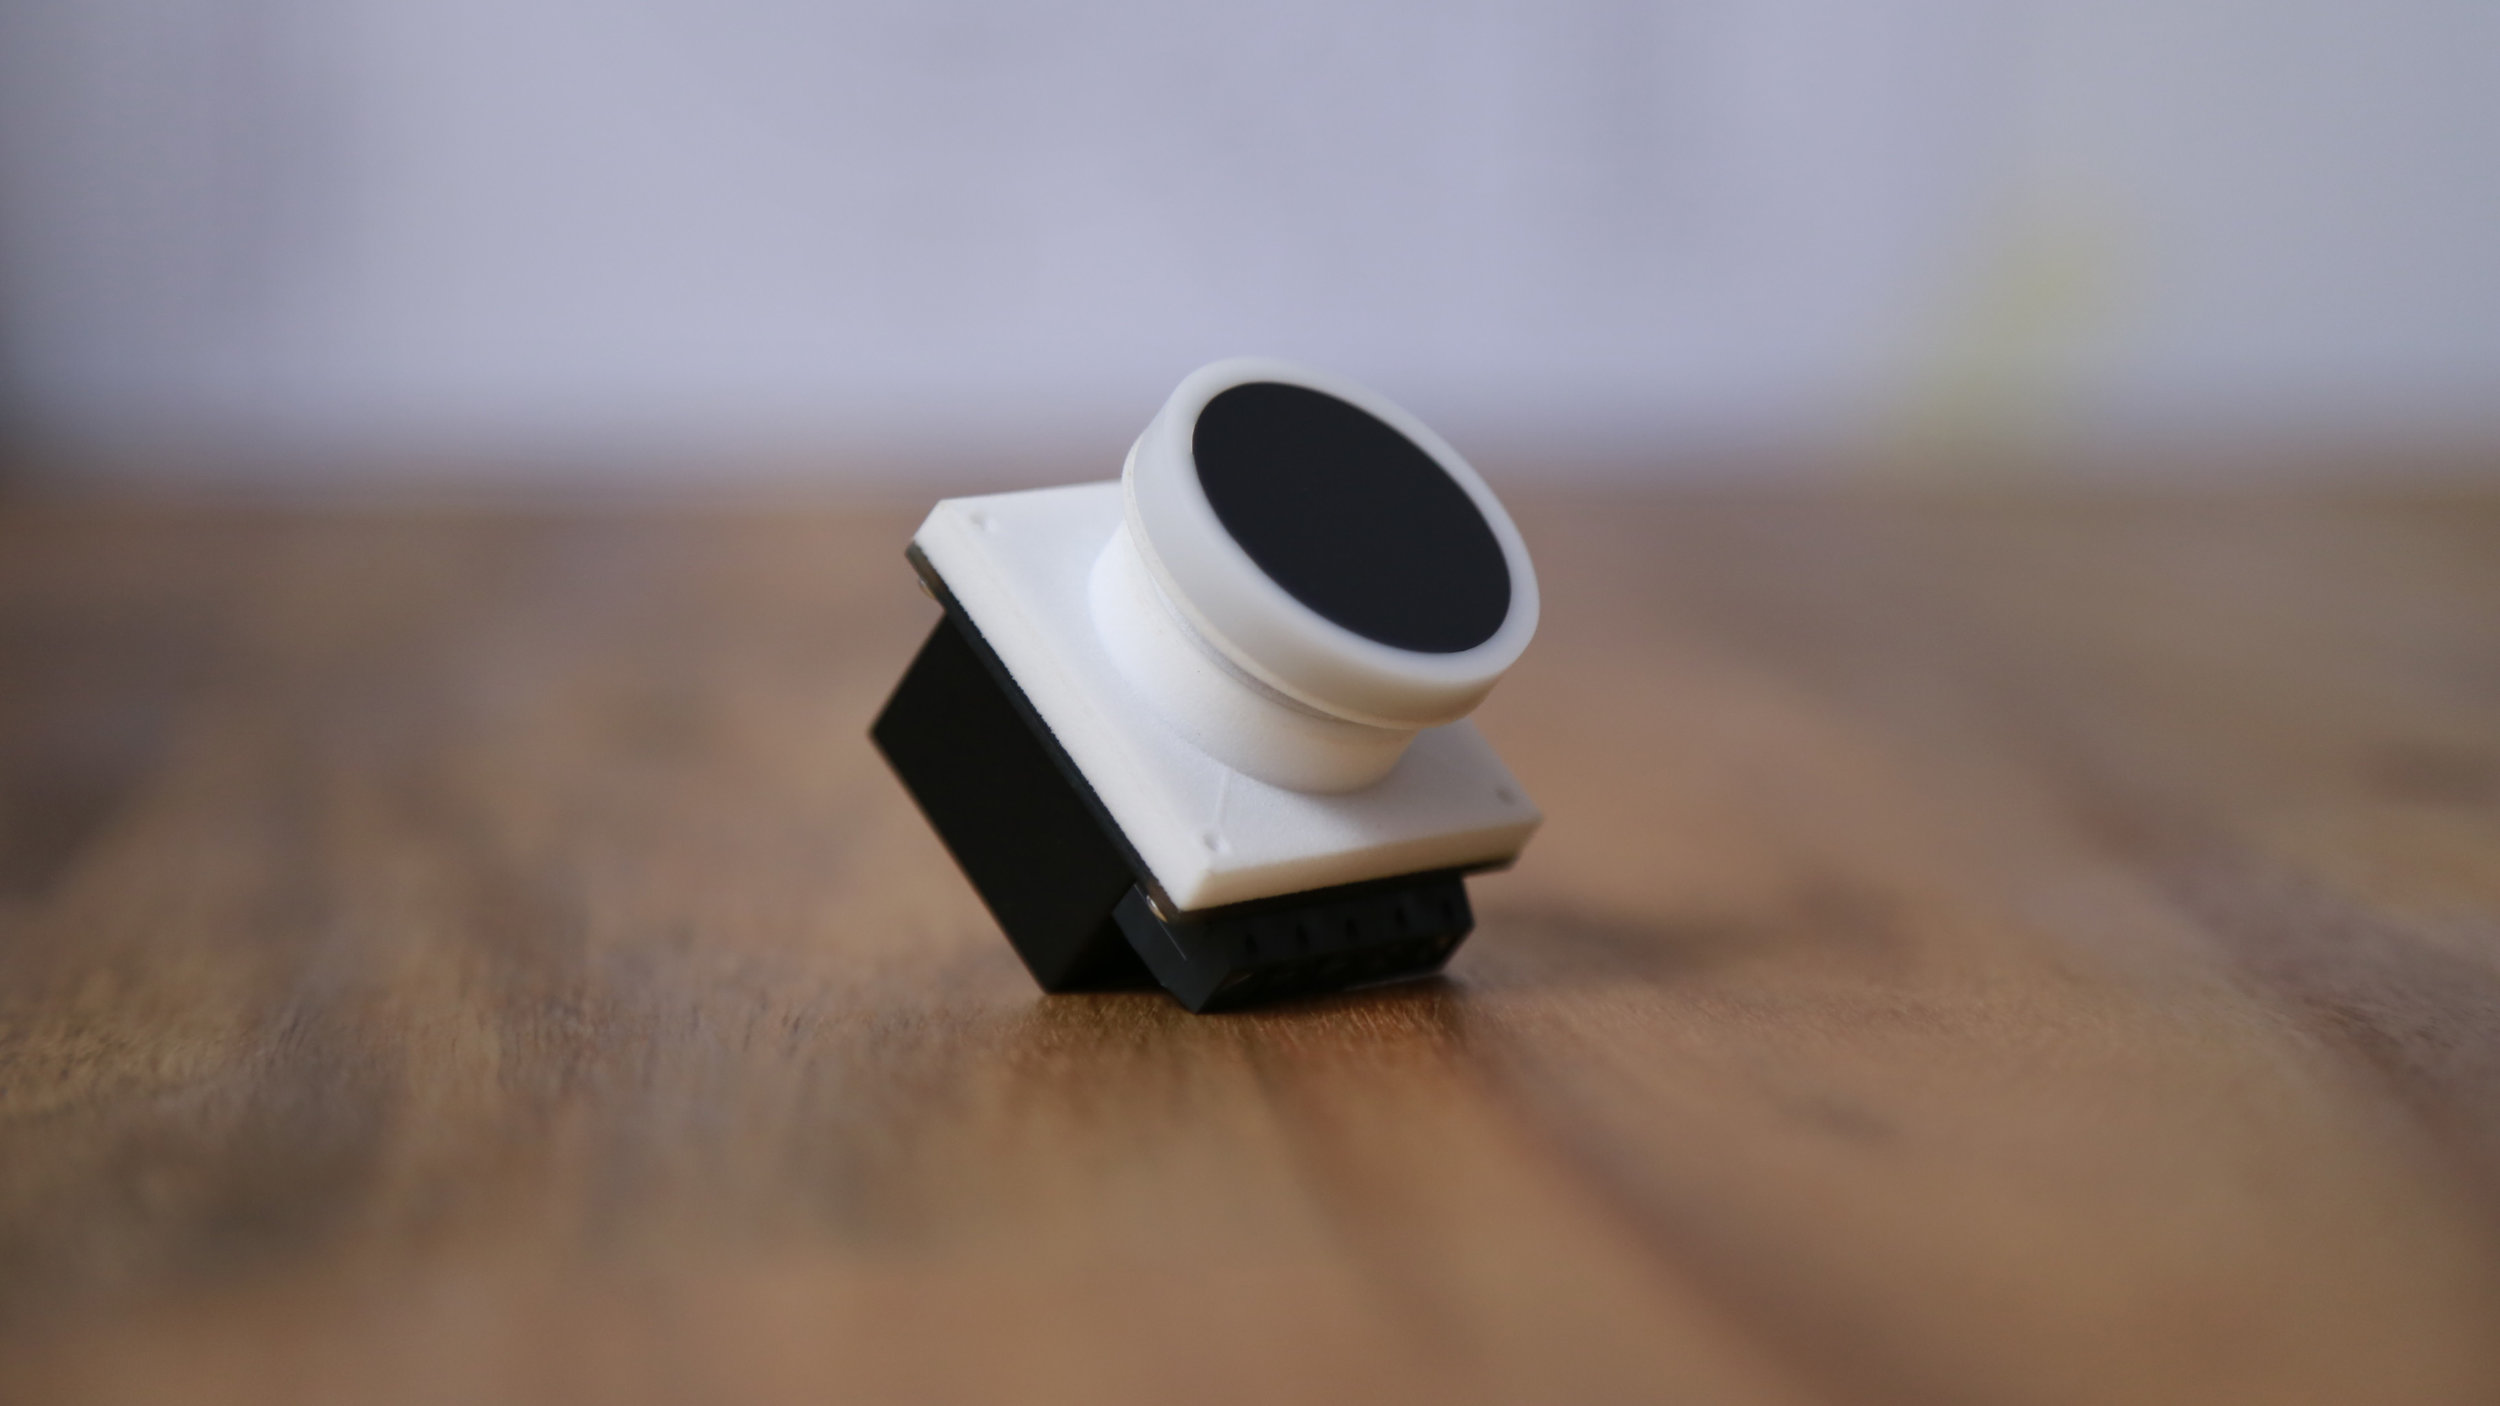 flee-mo™ touchless switch prototype model